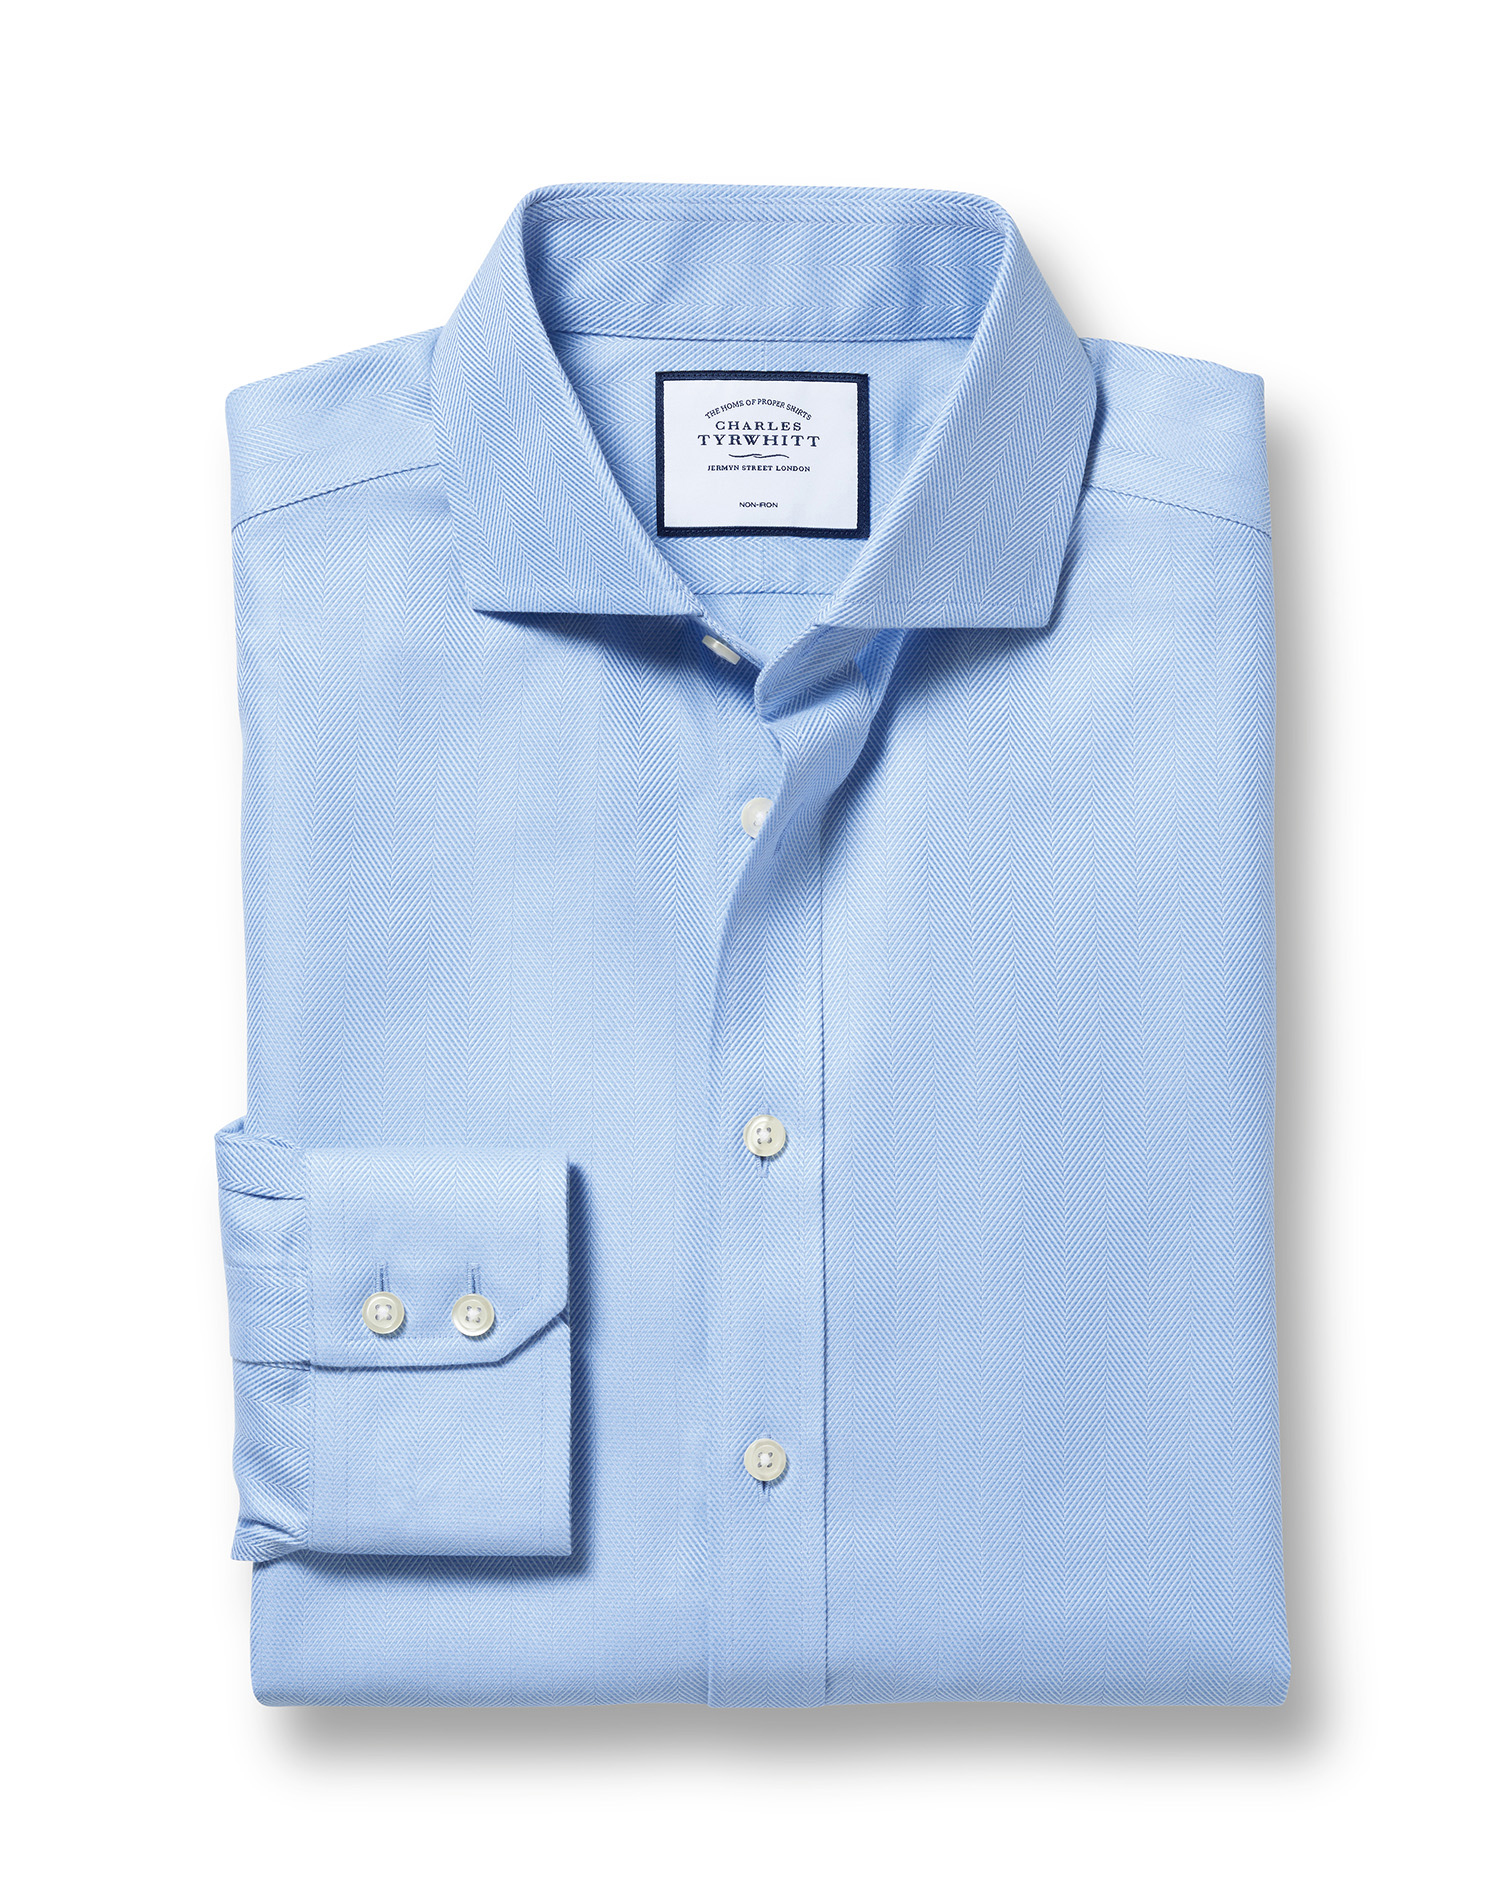 Slim Fit Non-Iron Sky Blue Herringbone Cotton Formal Shirt Double Cuff Size 16/34 by Charles Tyrwhit